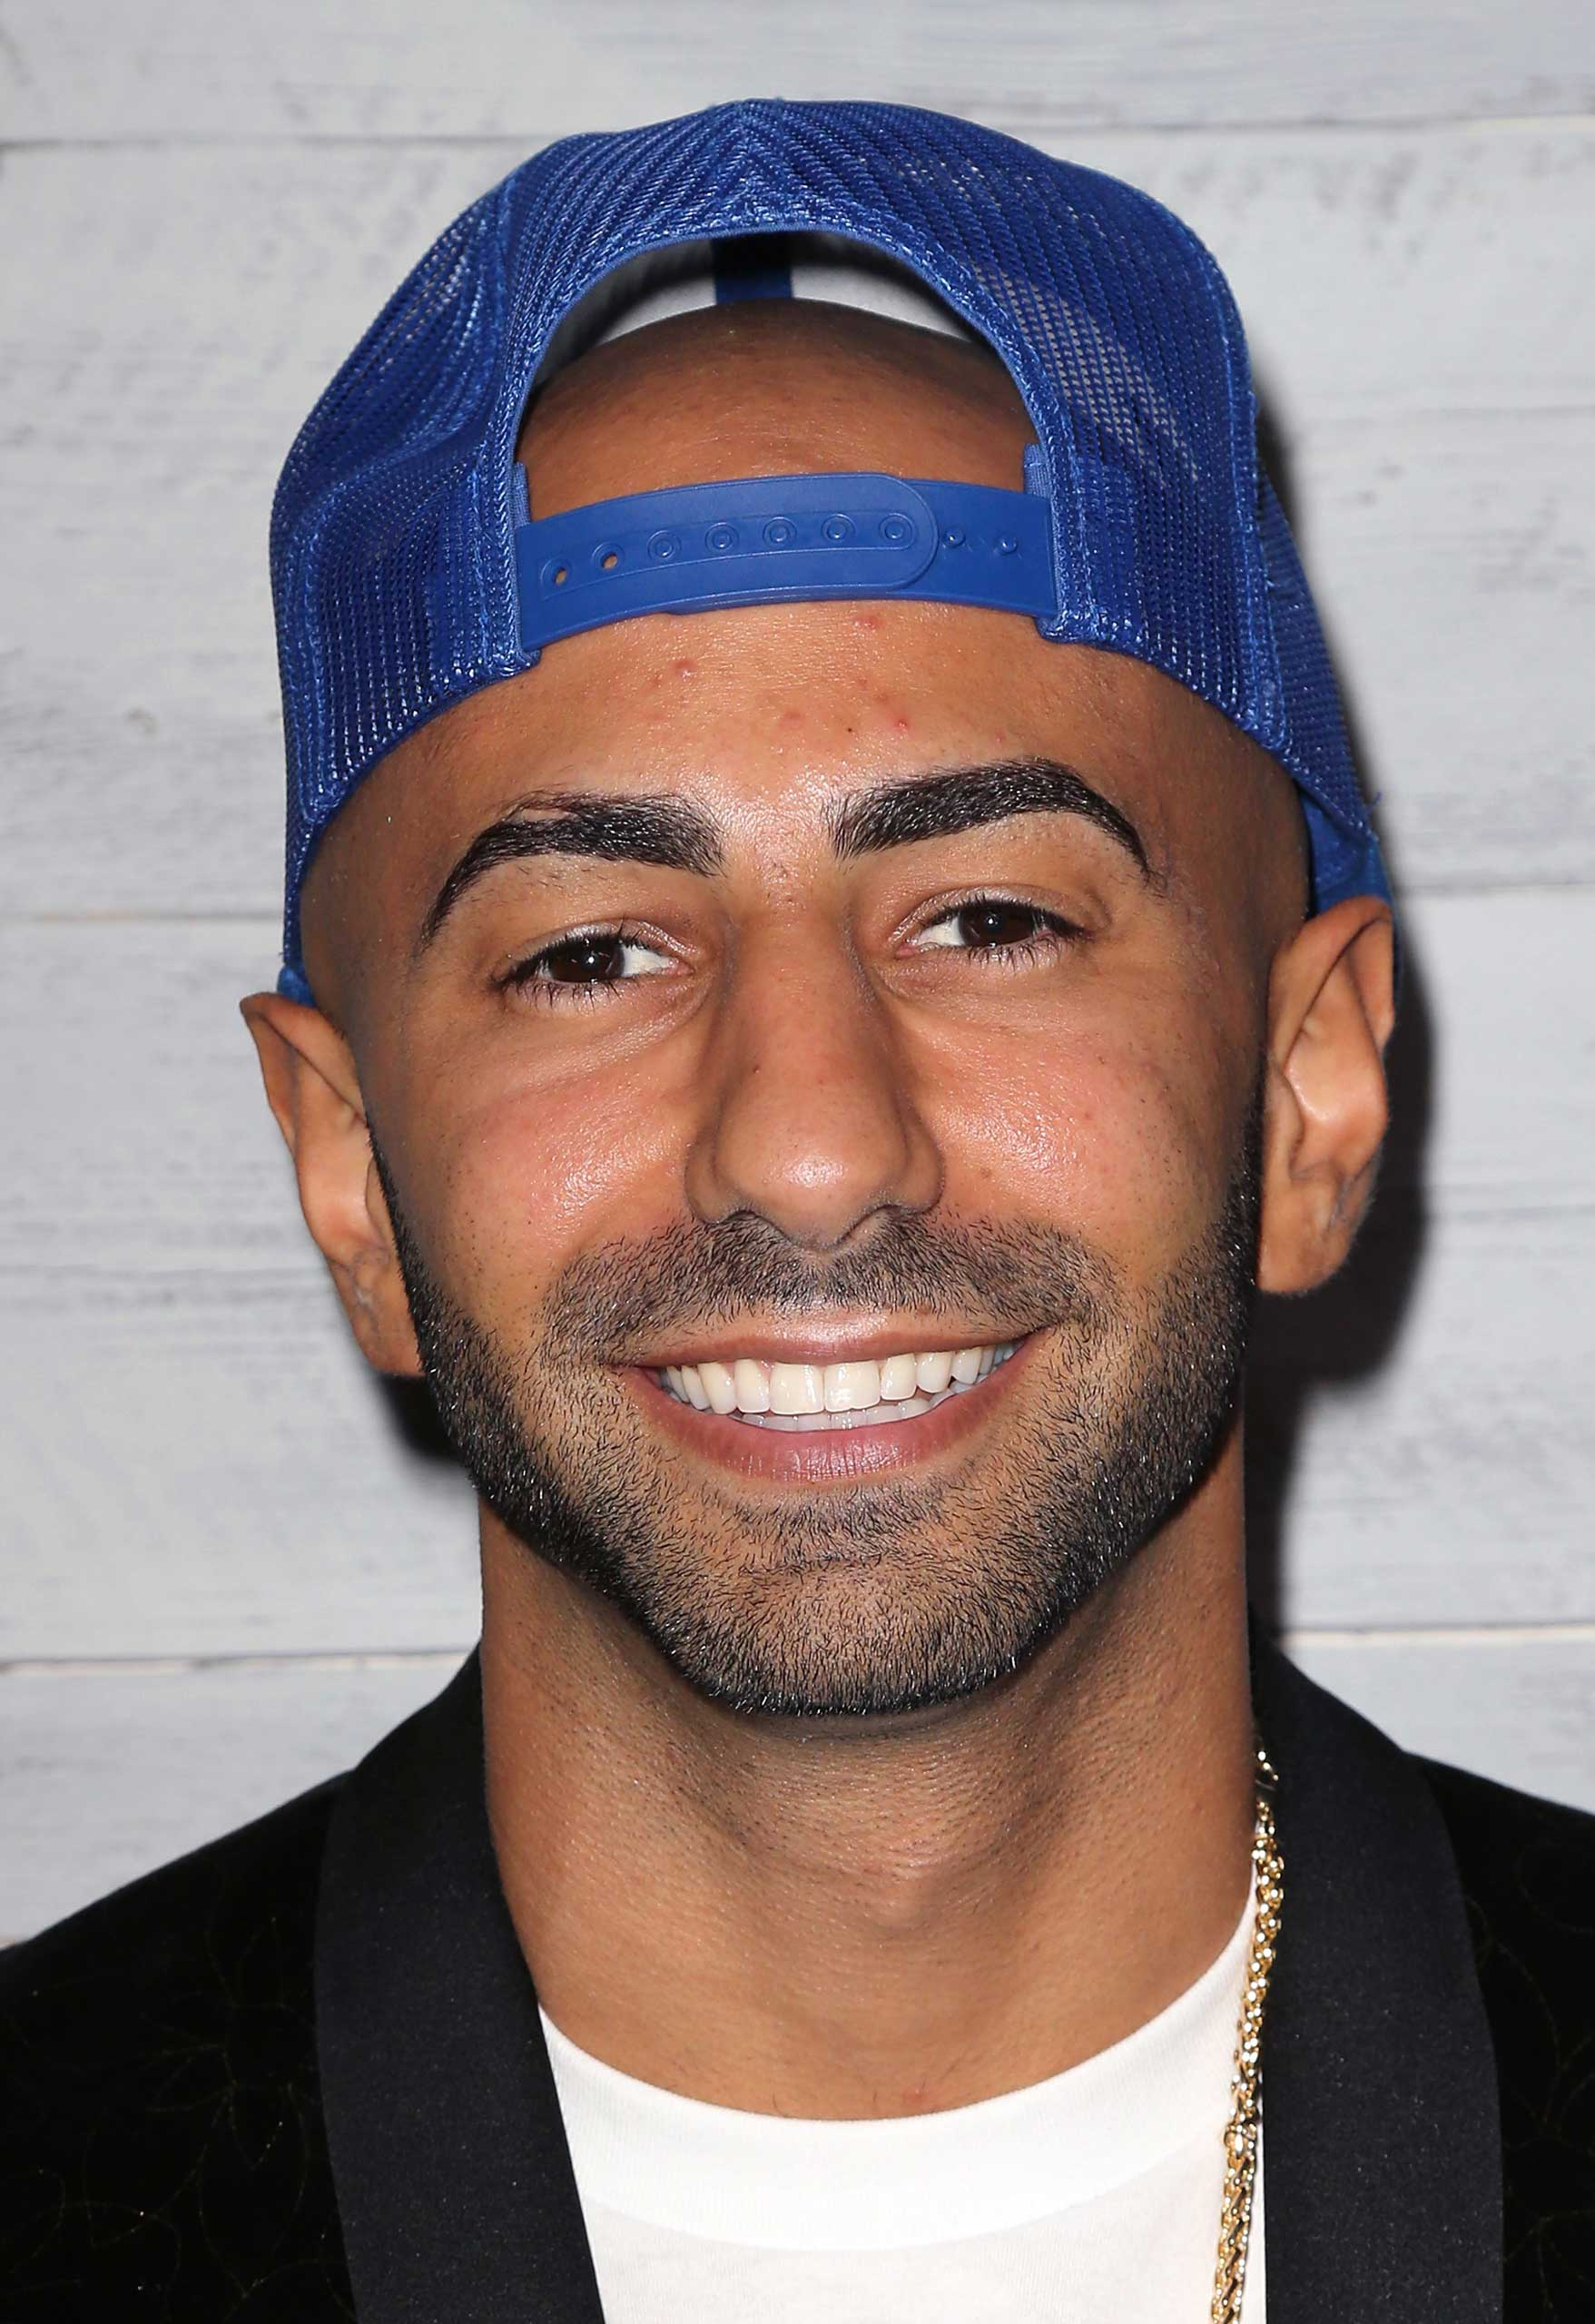 YouTube personality Yousef Saleh Erakat attends go90 Sneak Peek at the Wallis Annenberg Center for the Performing Arts on Beverly Hills, California, Sept. 24, 2015.